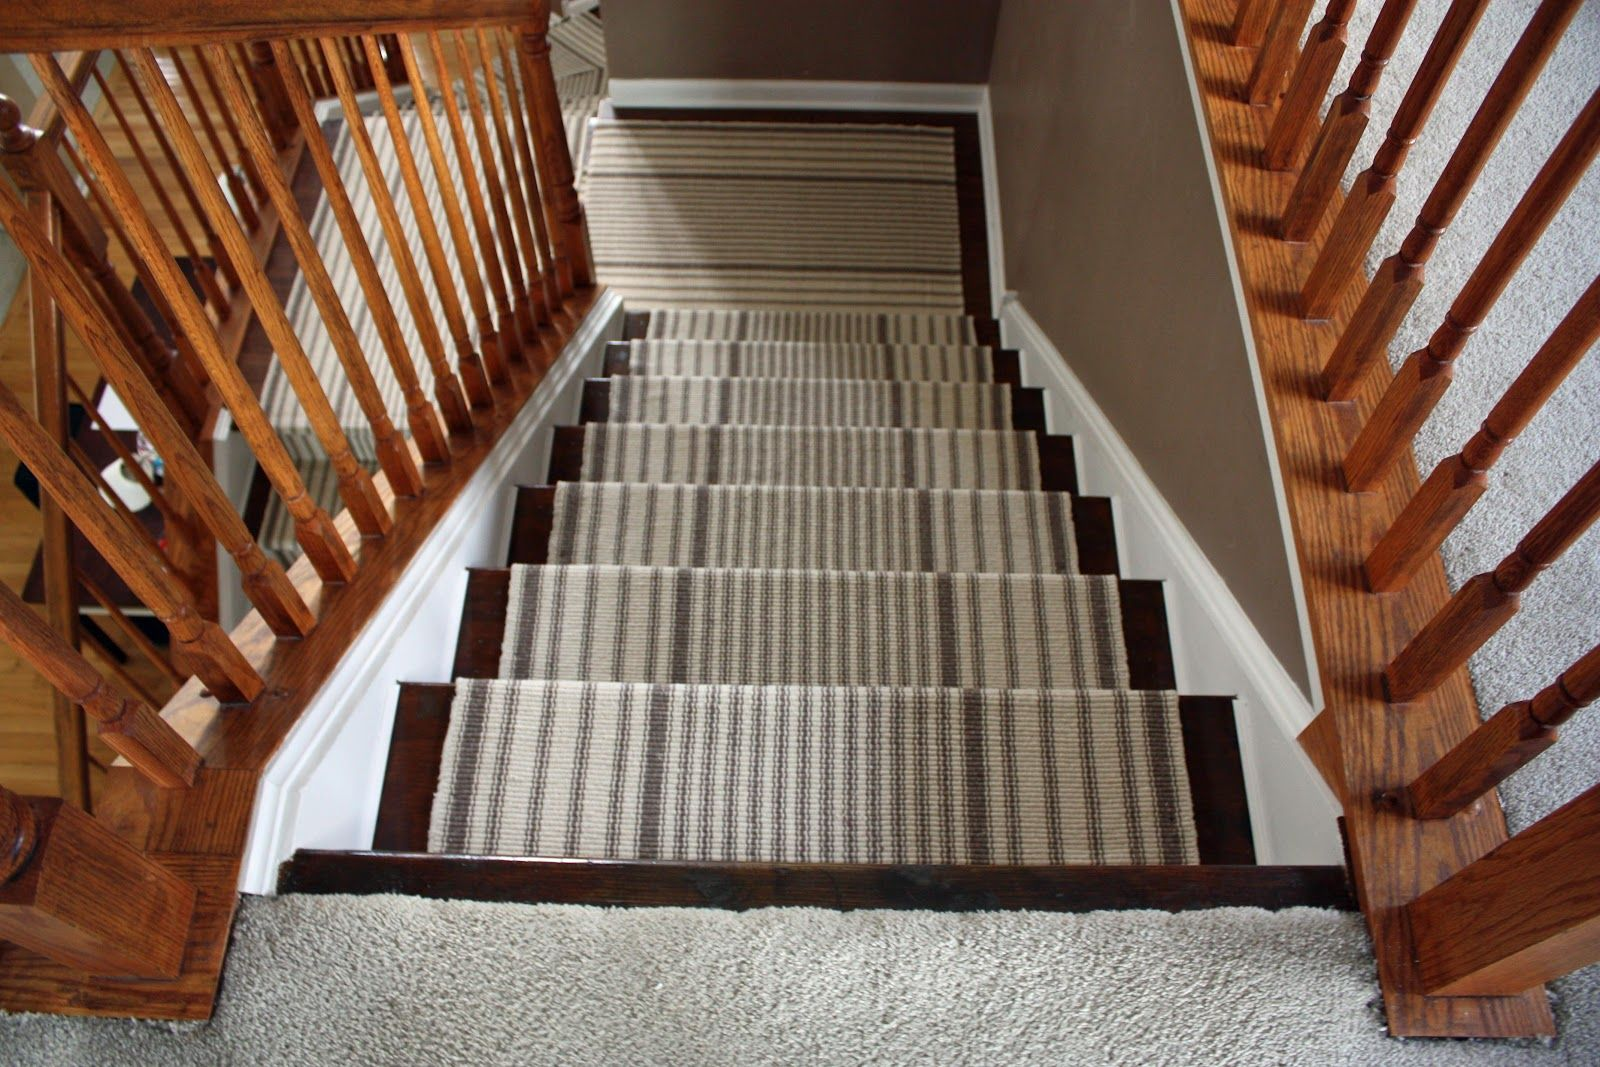 Best Patterned Carpet On Stairs With Wood Bullnose 400 x 300